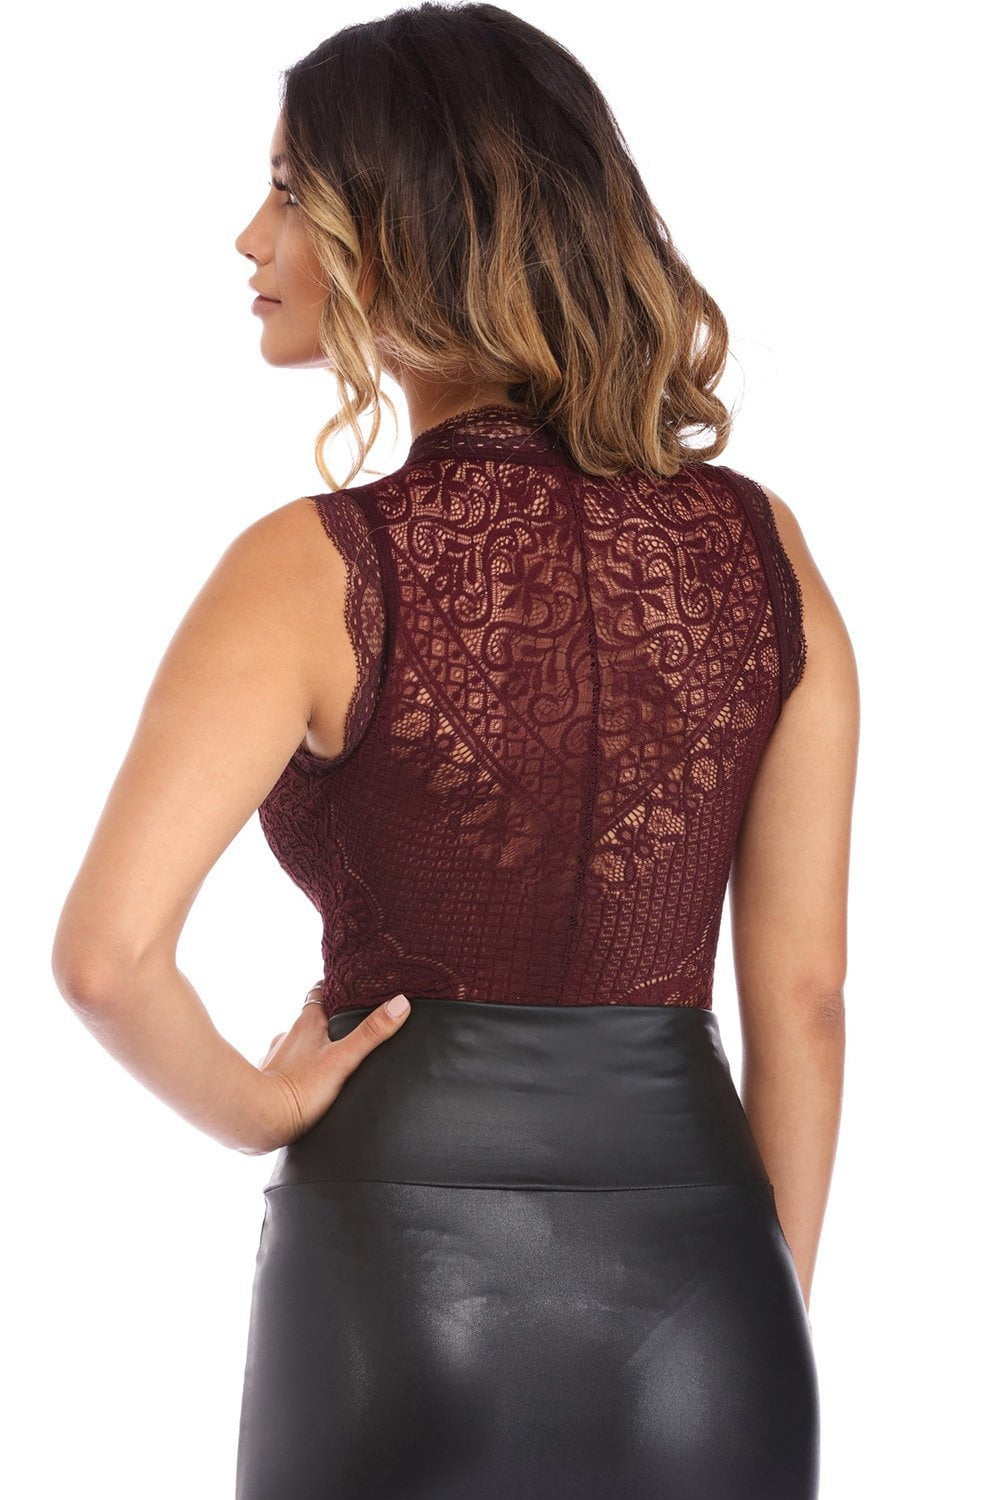 Indulge Lace Bodysuit - Wine Red